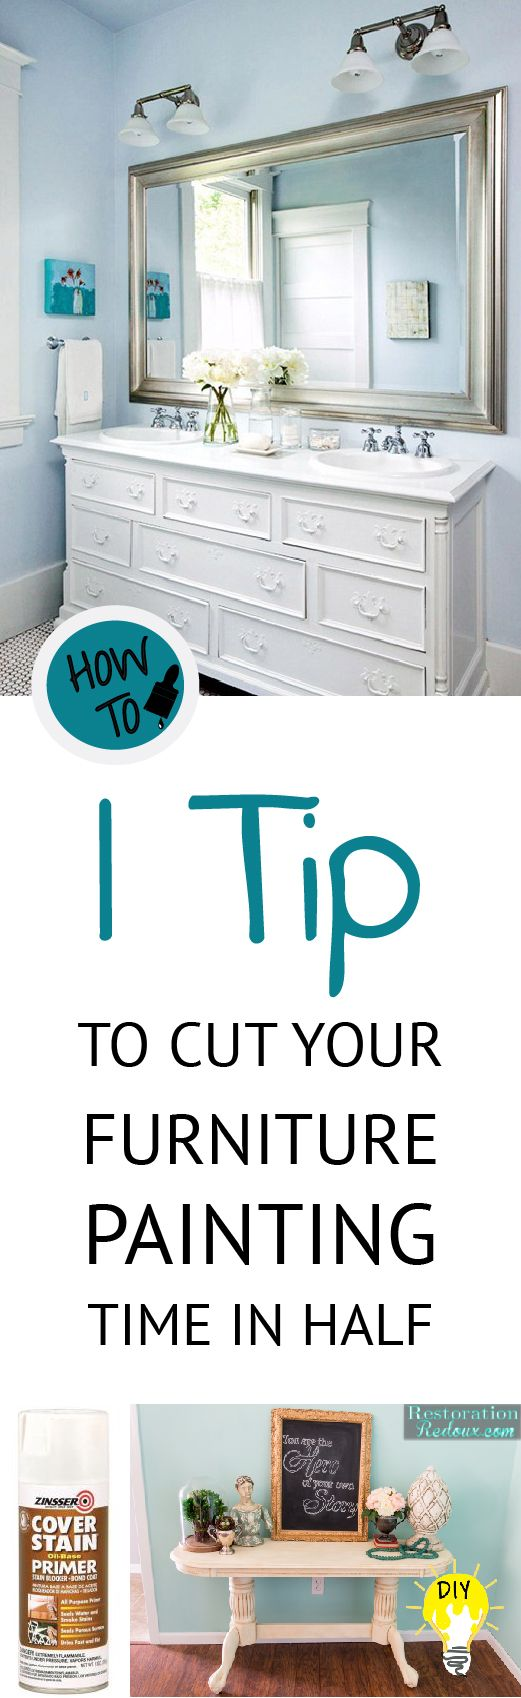 DIY projects are so much fun. I love the planning phase, where my creative juices are flowing, and getting the...  Read more »